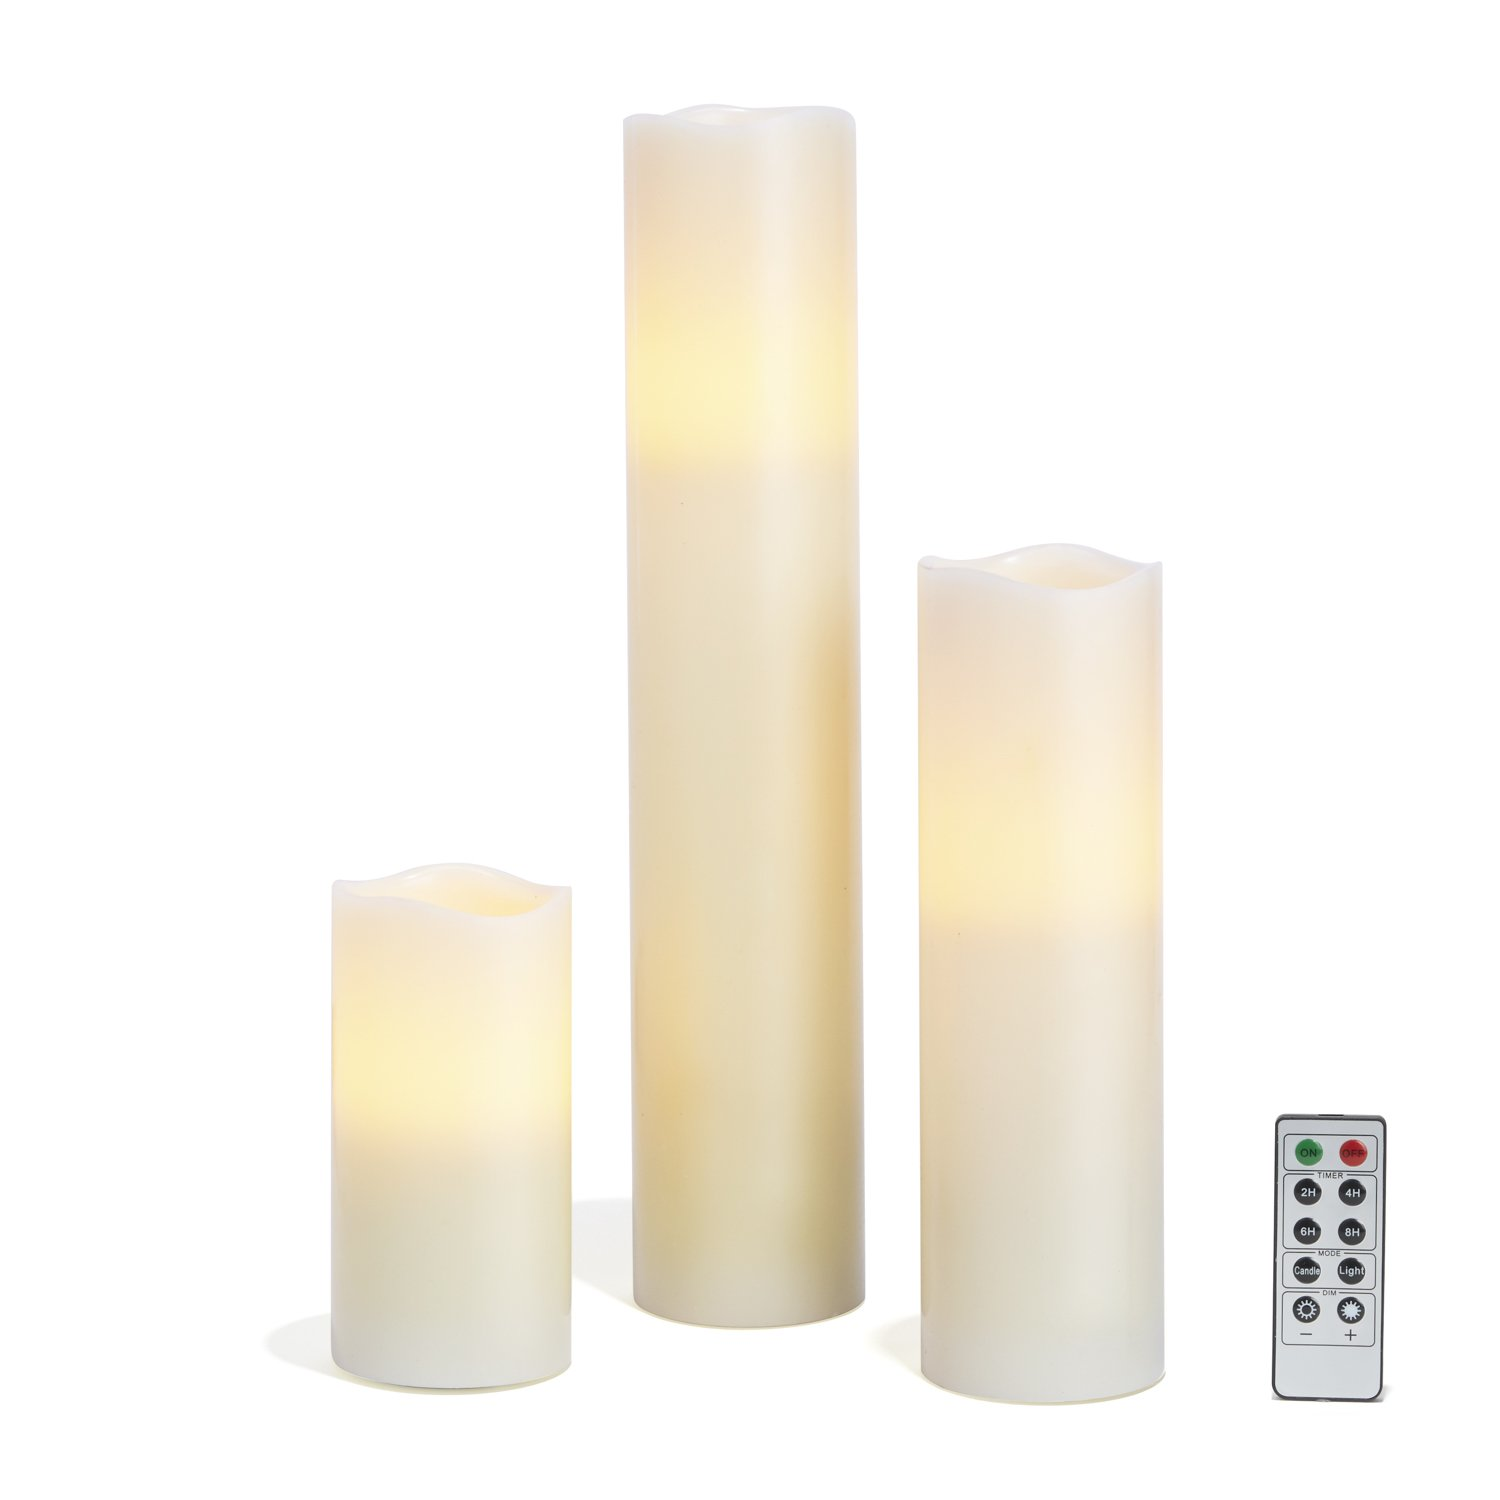 Flameless Ivory Pillar Candles with Remote, Tall Candle Set with Smooth Wax Finish, Warm White Glowing LEDs, Batteries Included - Set of 3